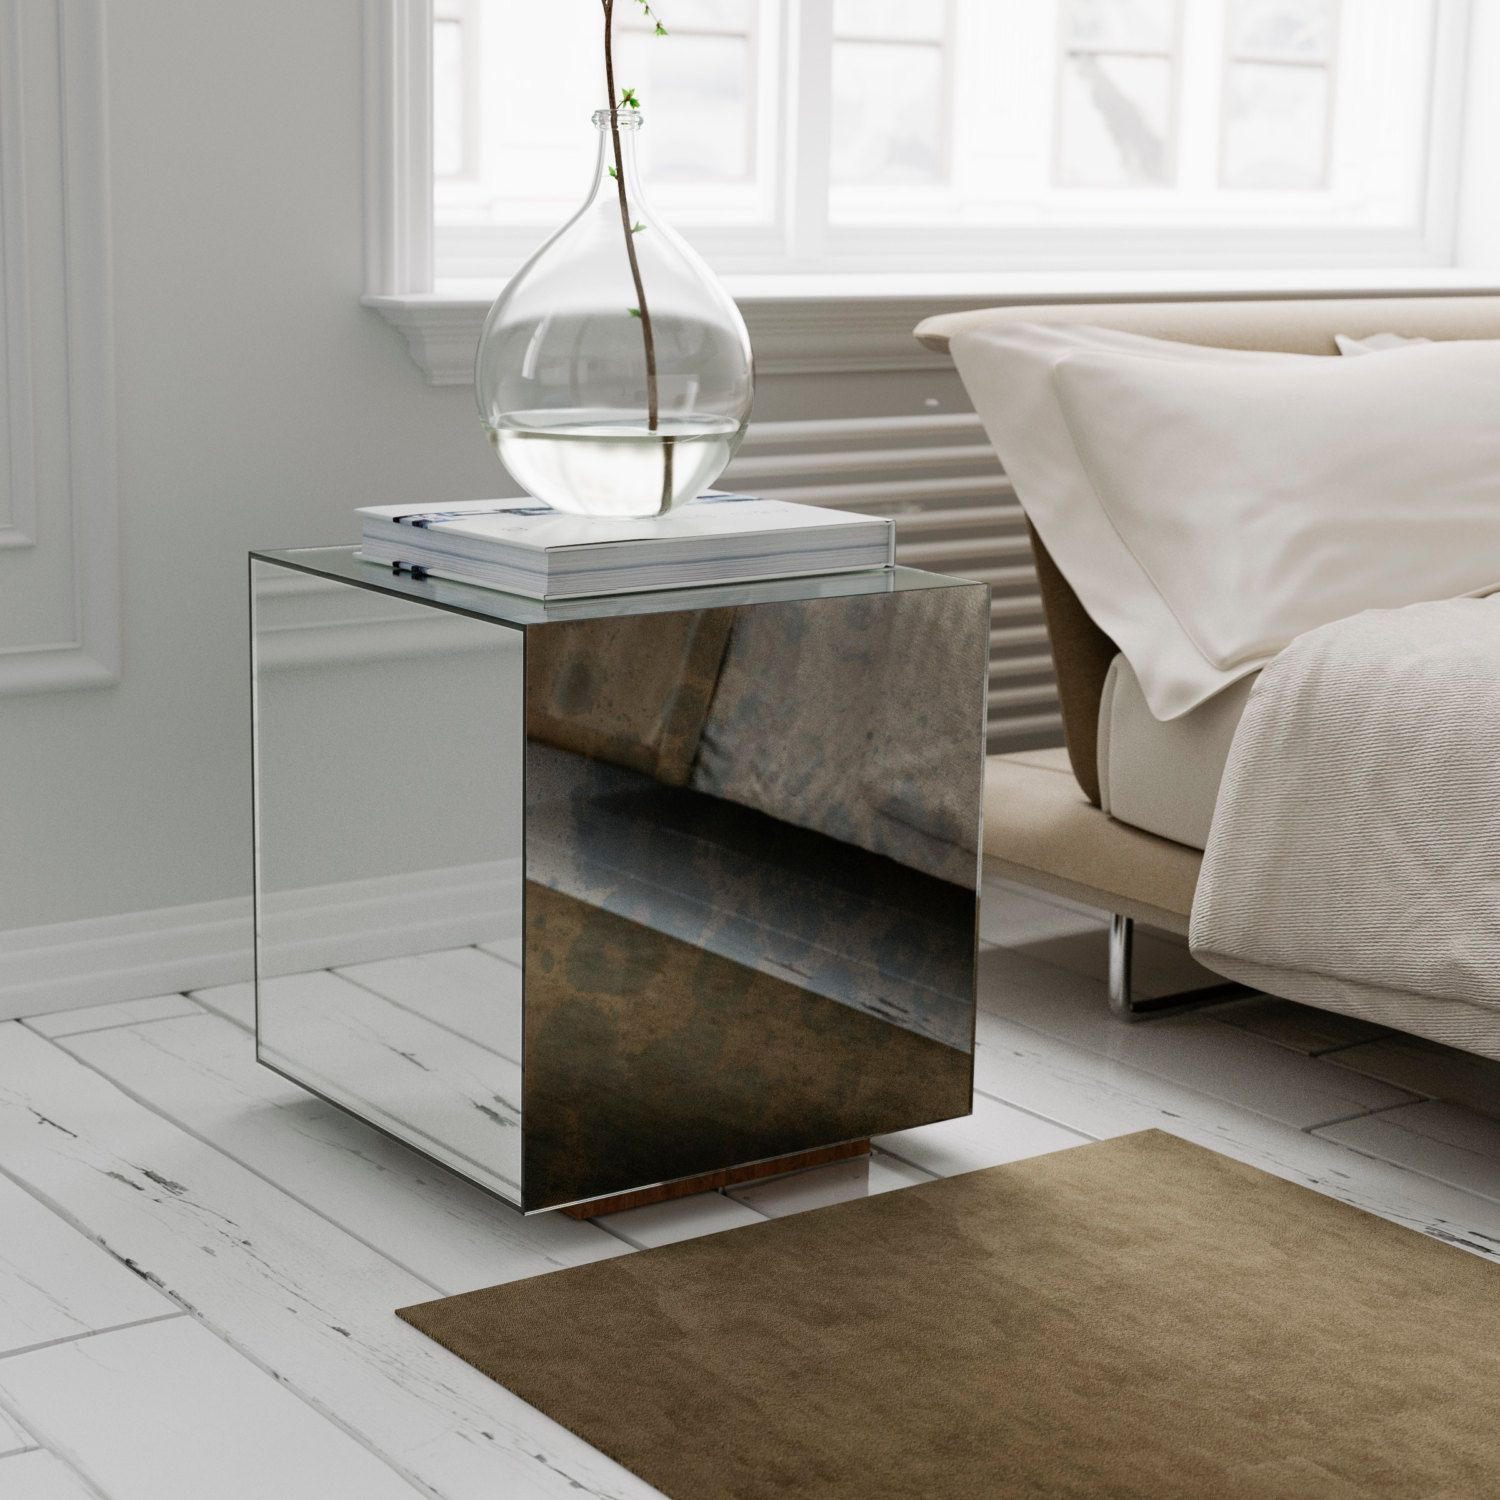 Pin by MirrorCoop on Mirrors Mirrored side tables